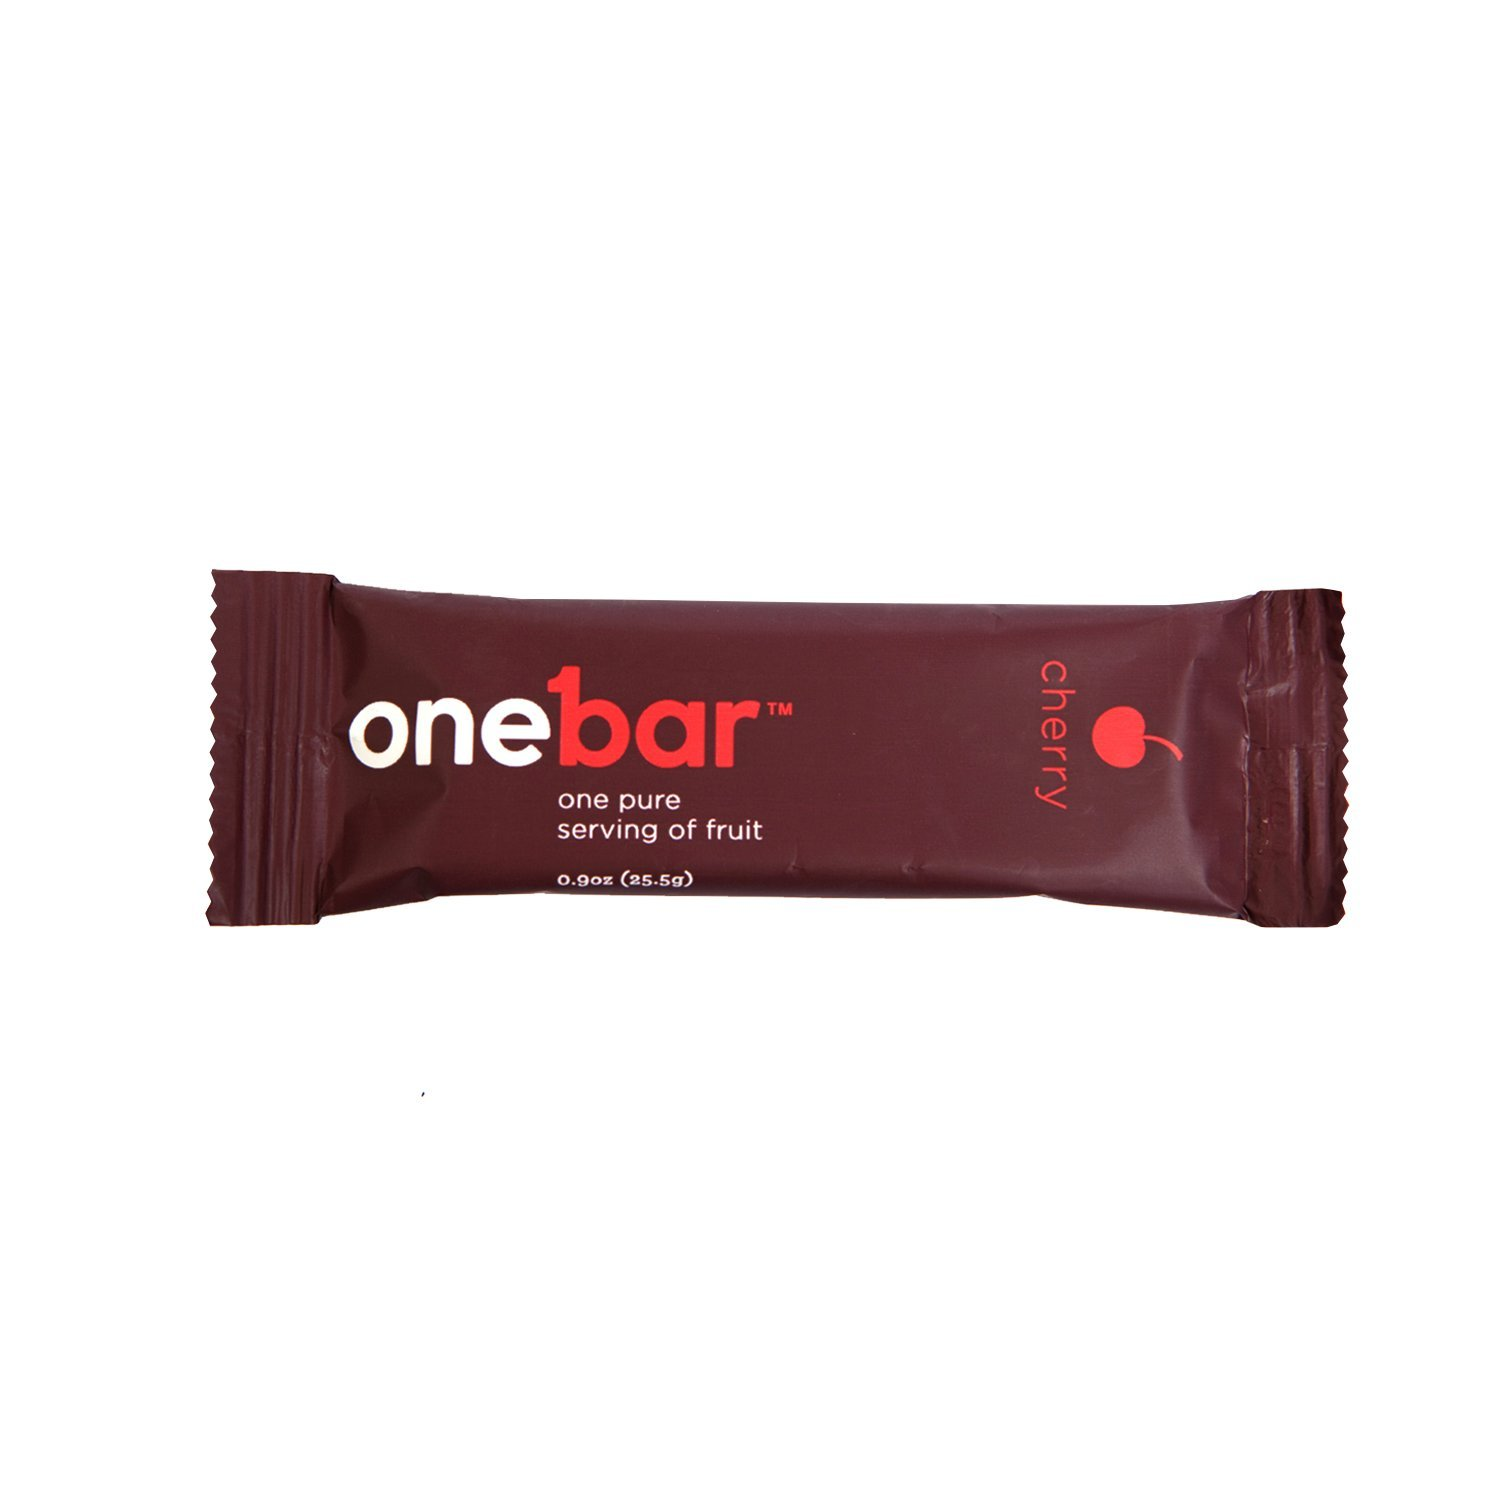 OneBar - One Pure Serving of Fruit. 100% Natural, Gluten Free, Enriched with Baobab - Cherry, 0.9 Ounce (Pack of 12)